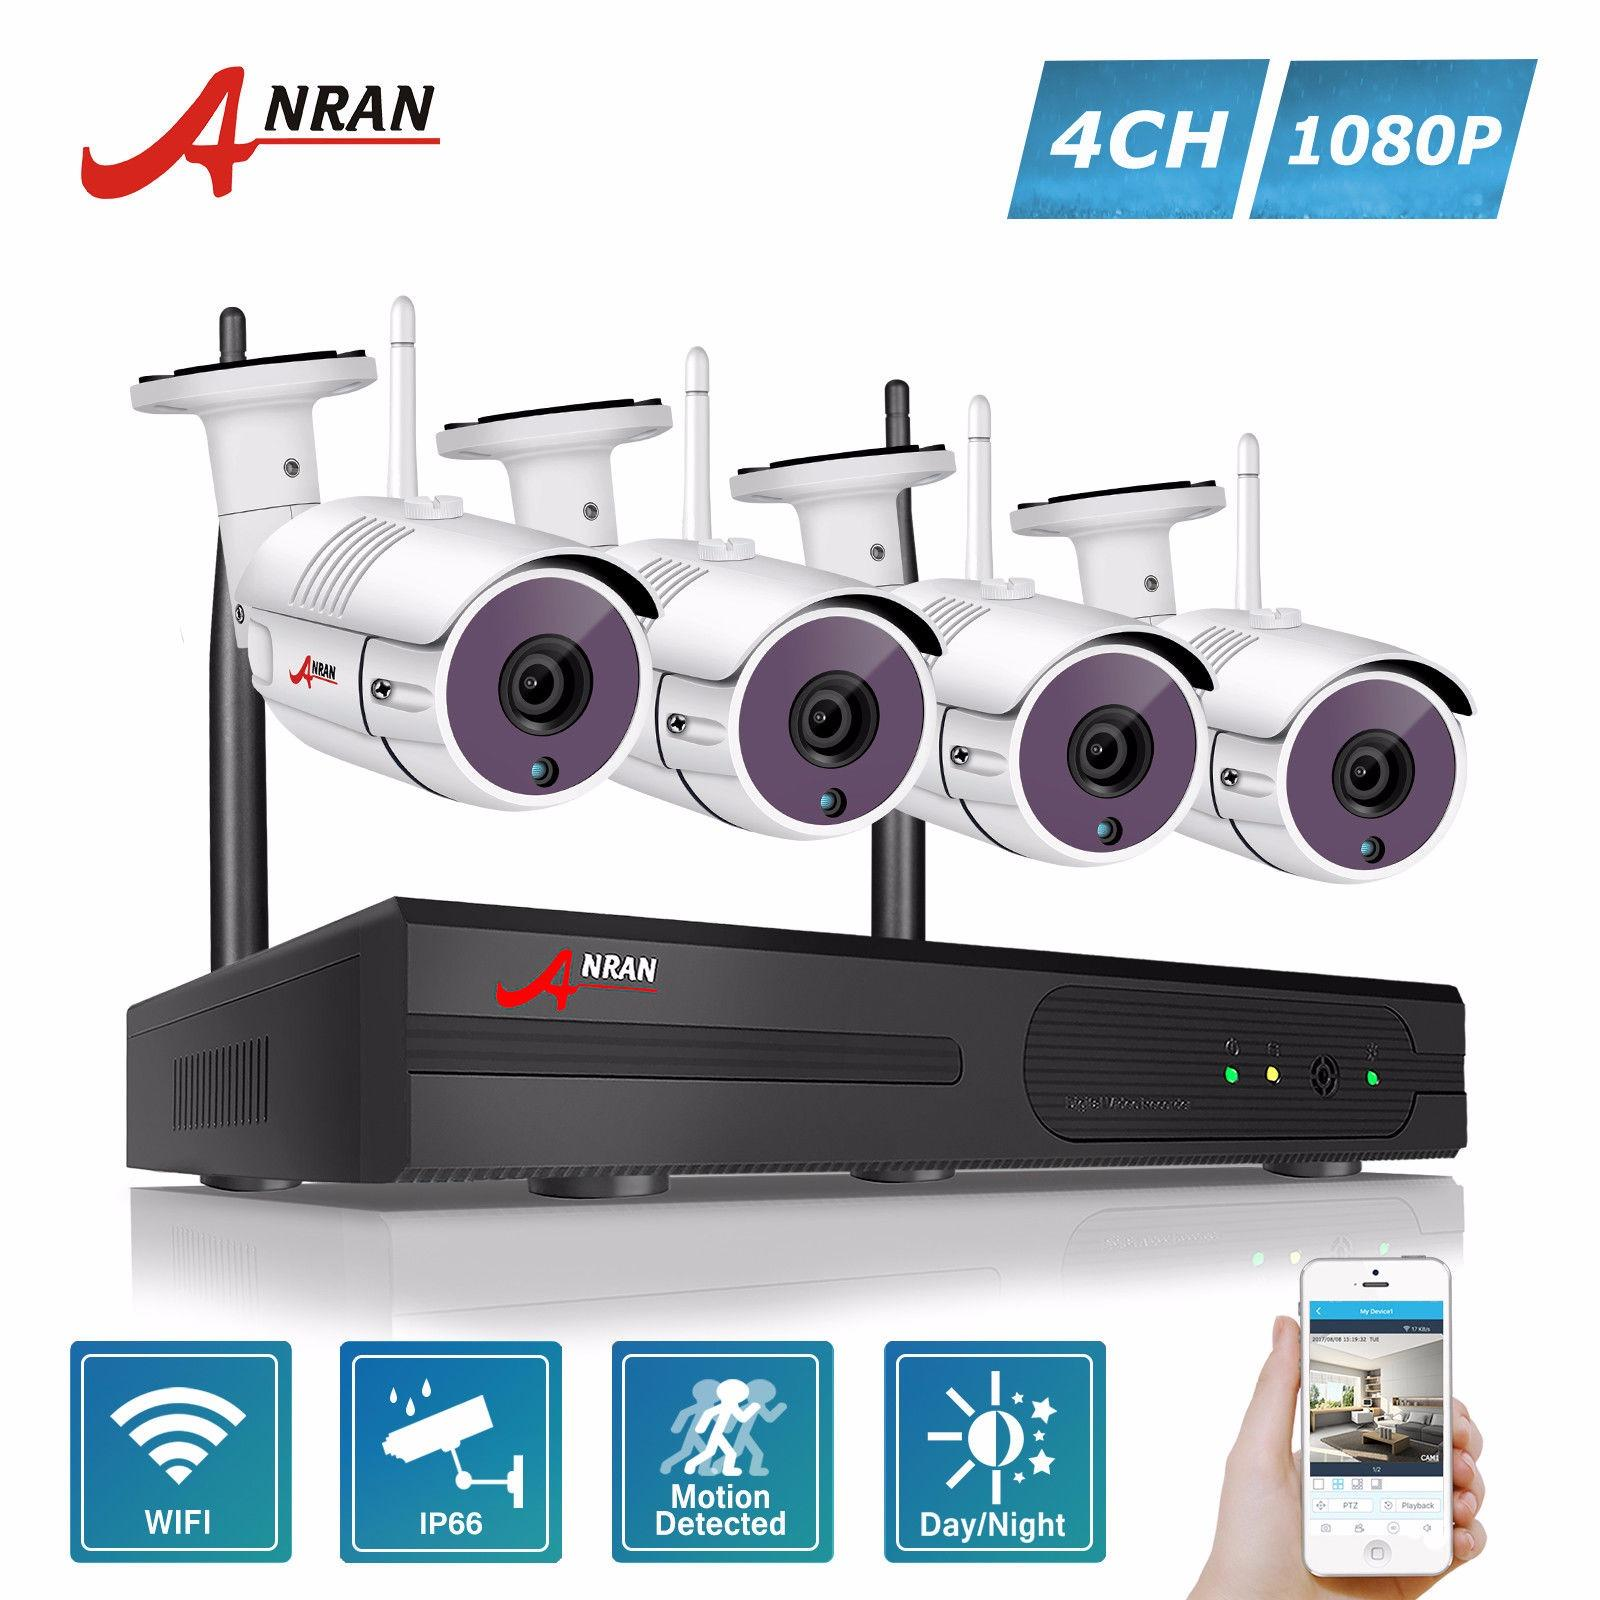 Review Toko Anran 4Ch Wireless Nvr Security Cctv System P2P 1080P Hd Outdoor Vandalproof Wfi Ip Camera Online